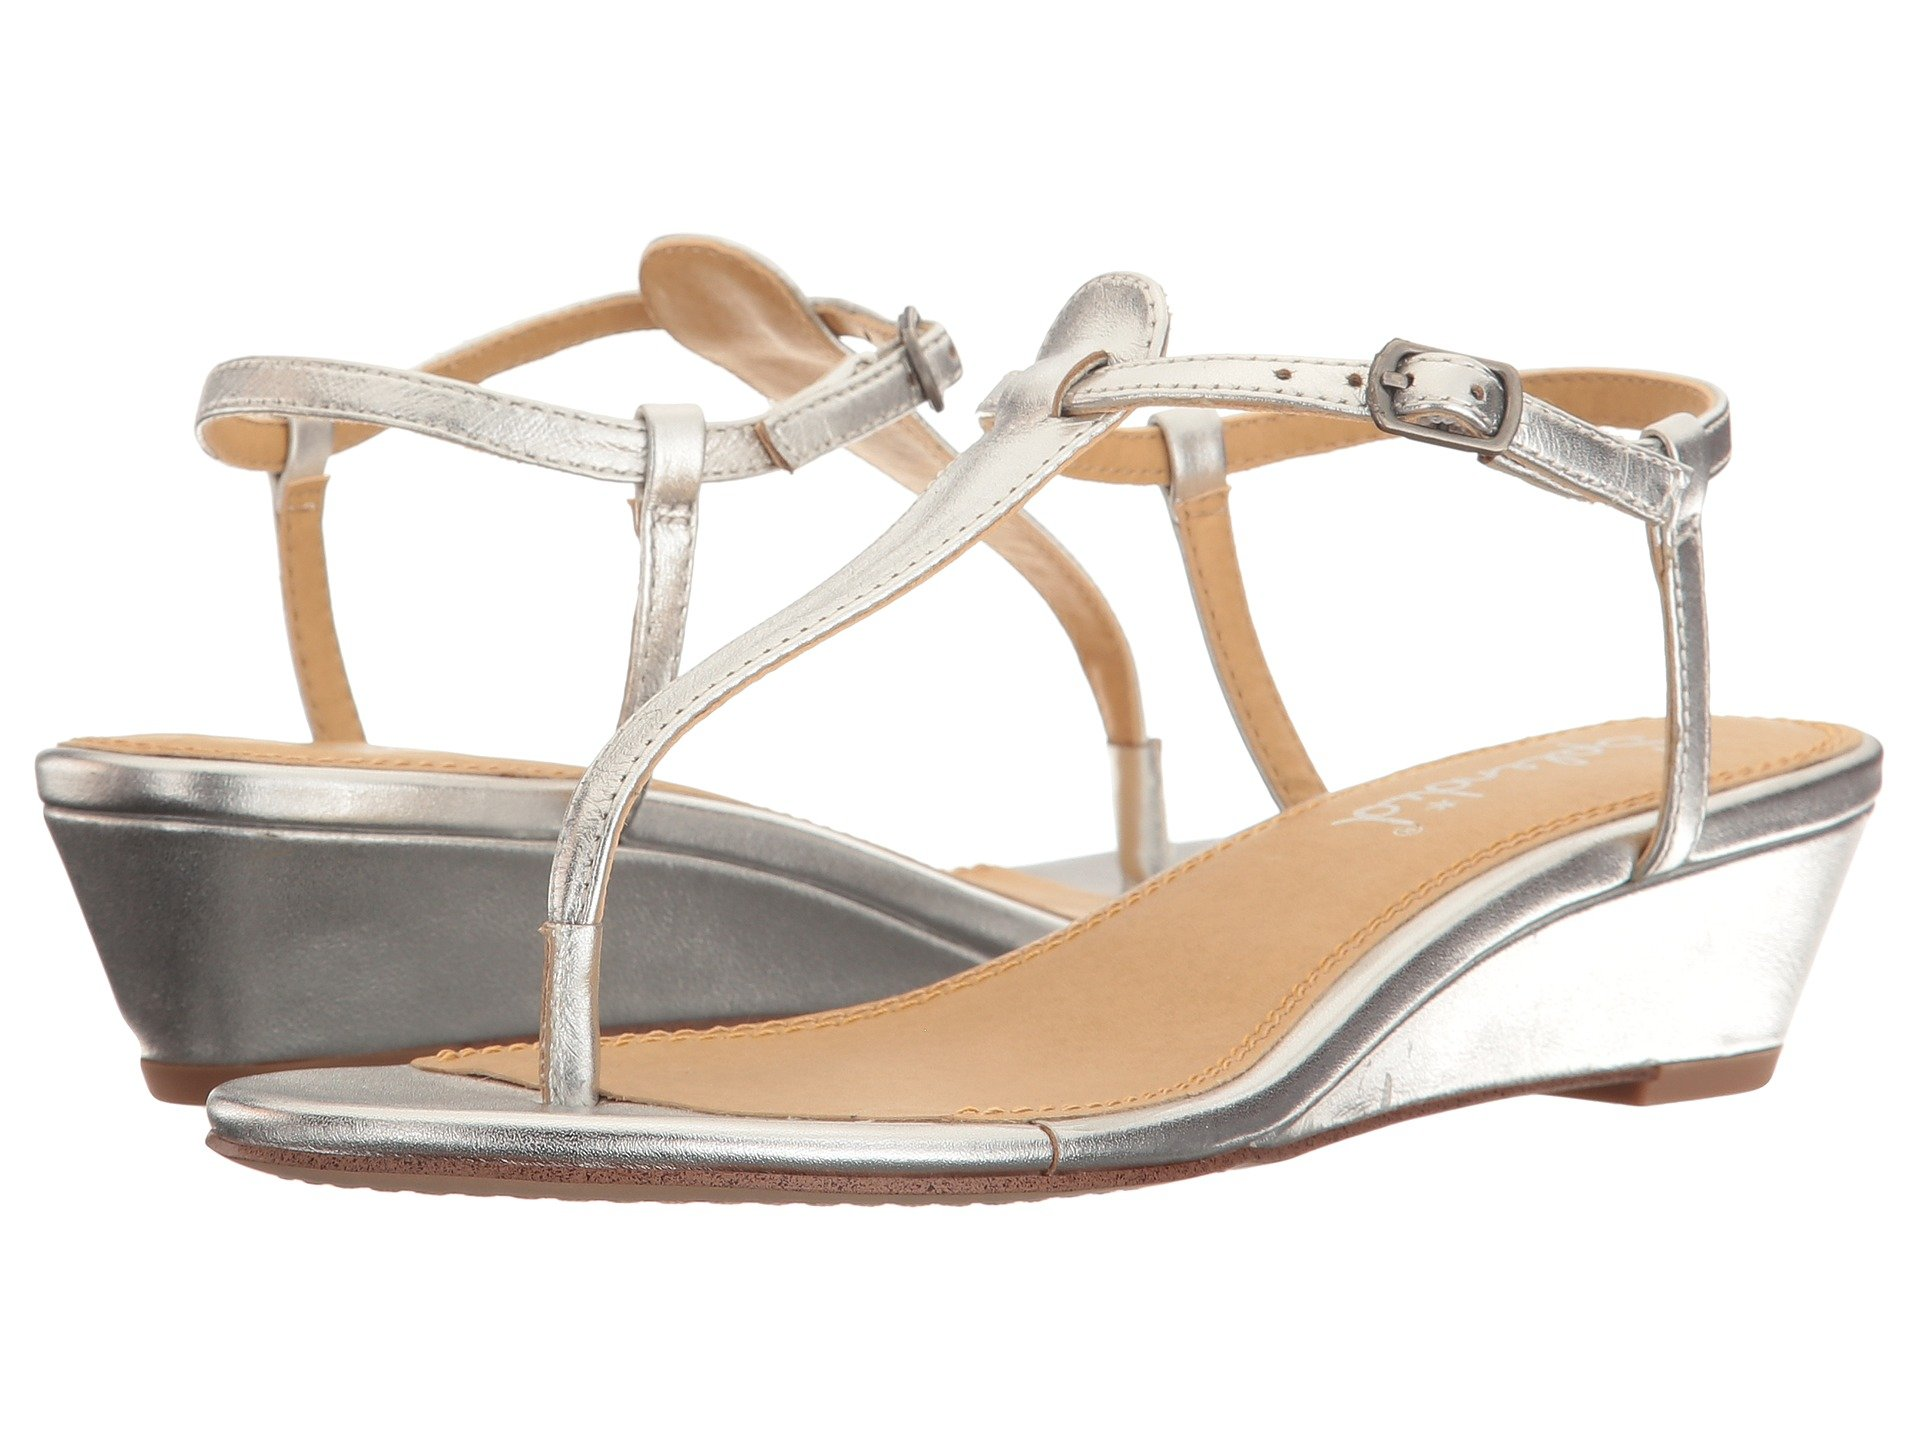 SPLENDID Swain T-Strap Wedge Sandal in Silver